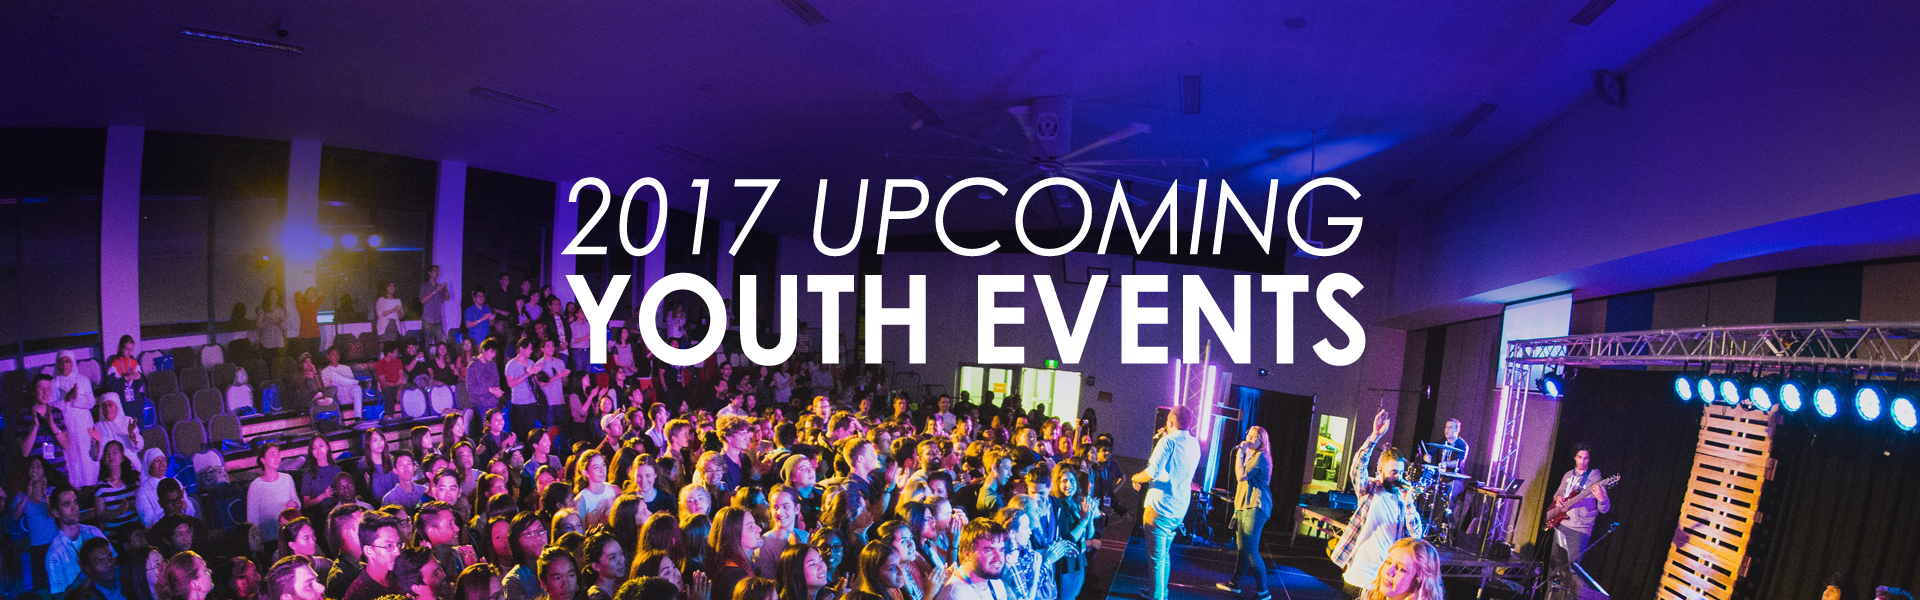 Youth-Events-Banner-1920x600